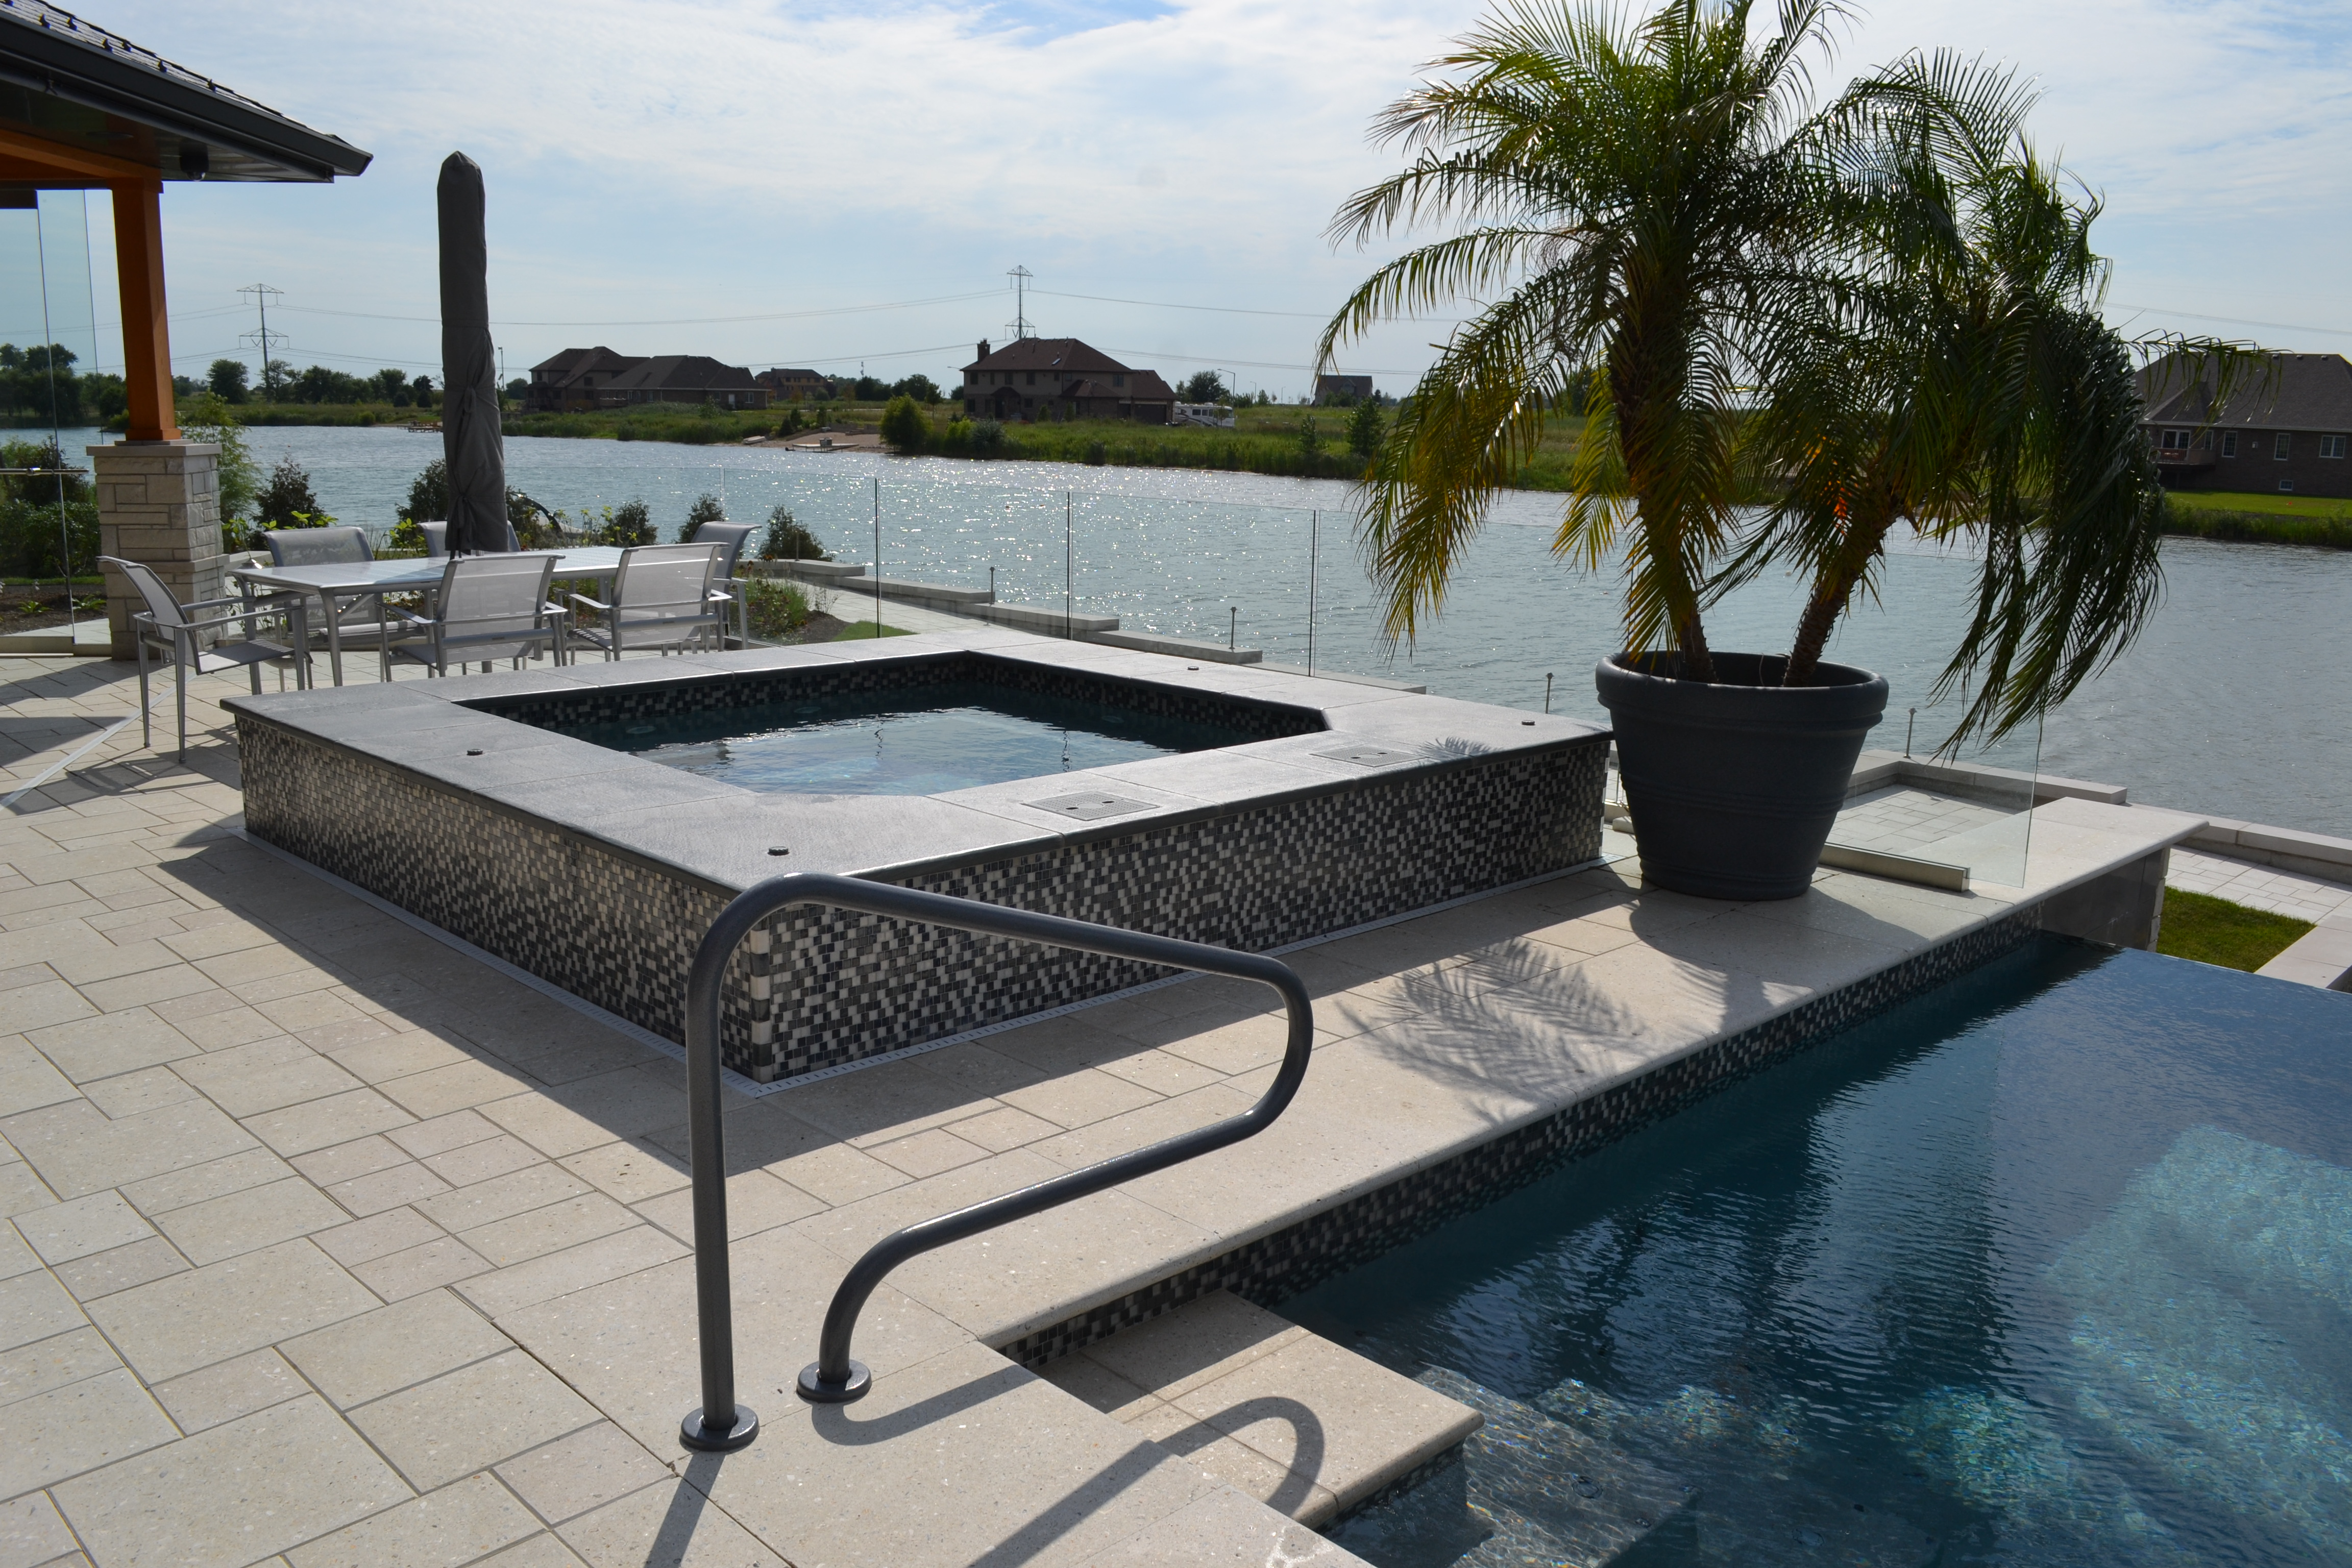 gunite spa with glass tile builder